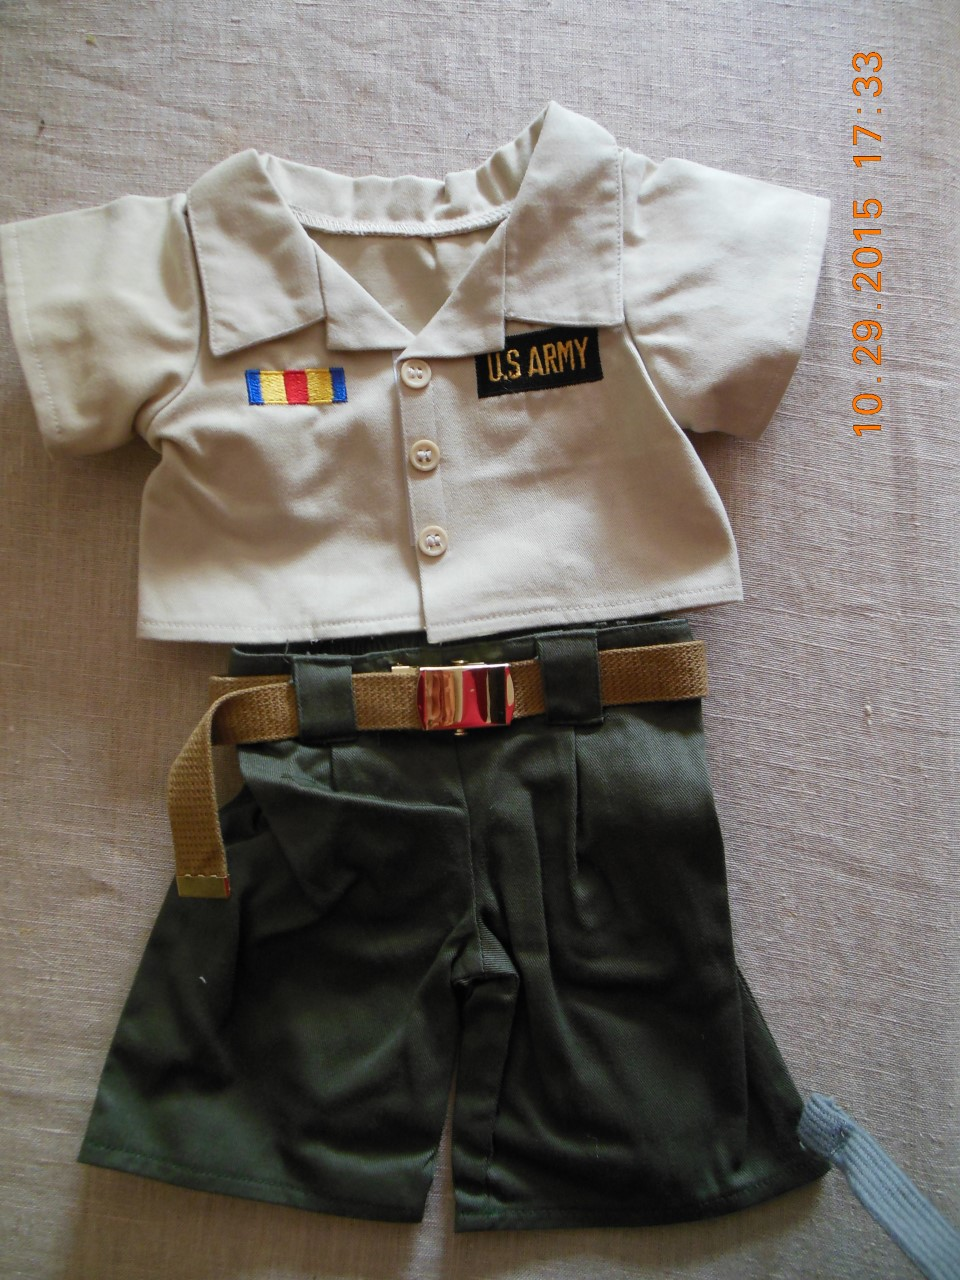 14-16 inch U.S. Army Uniform